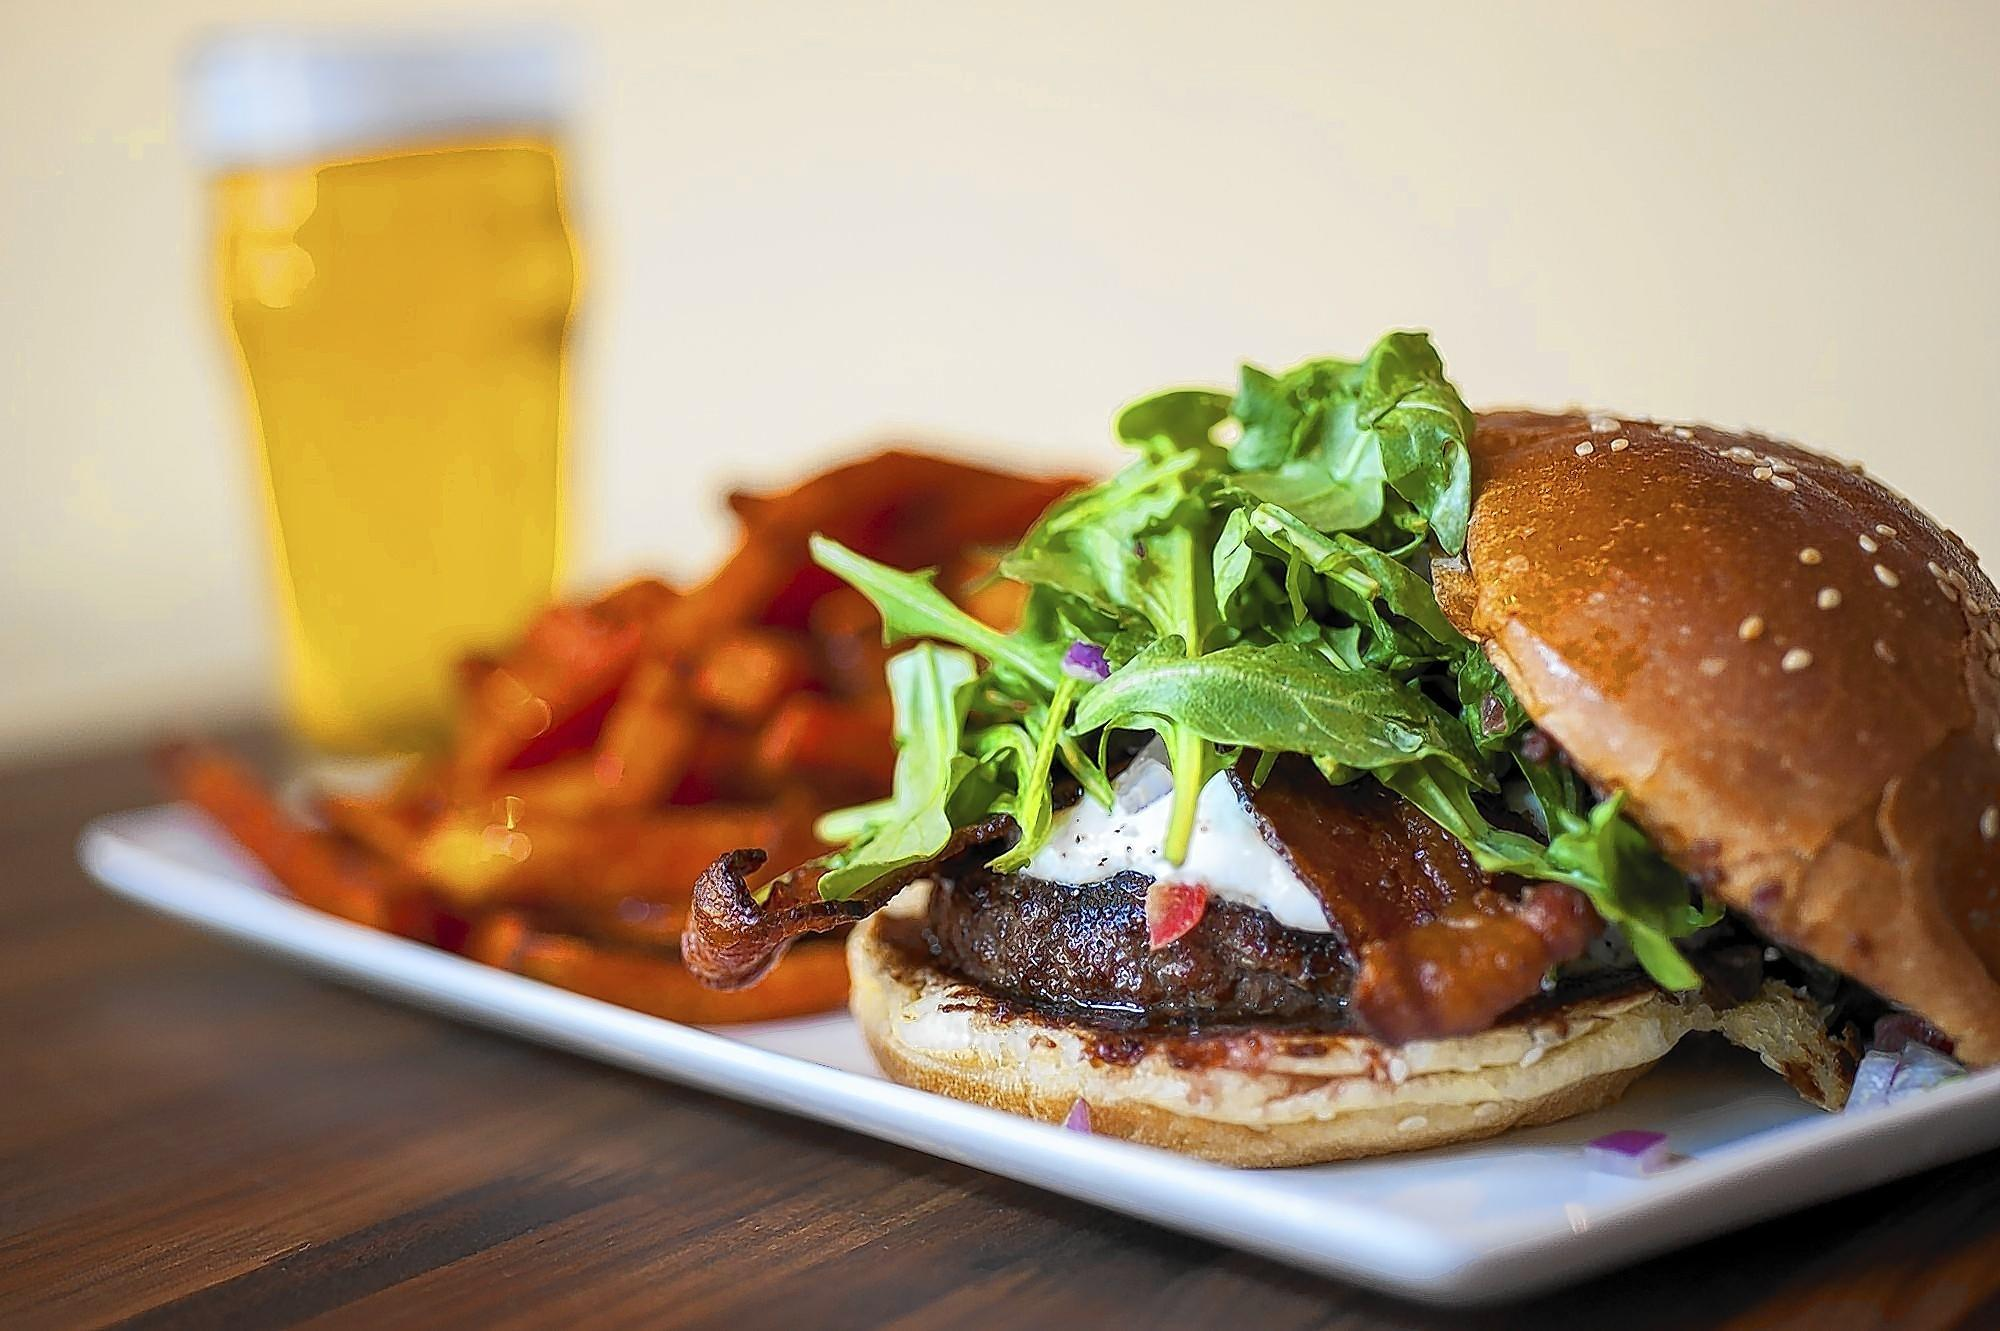 The Fresno Fig Burger includes a homemade fig marmalade, melted goat cheese, crispy bacon garnished with tomato, red onion and arugula tossed in a spicy porter mustard.